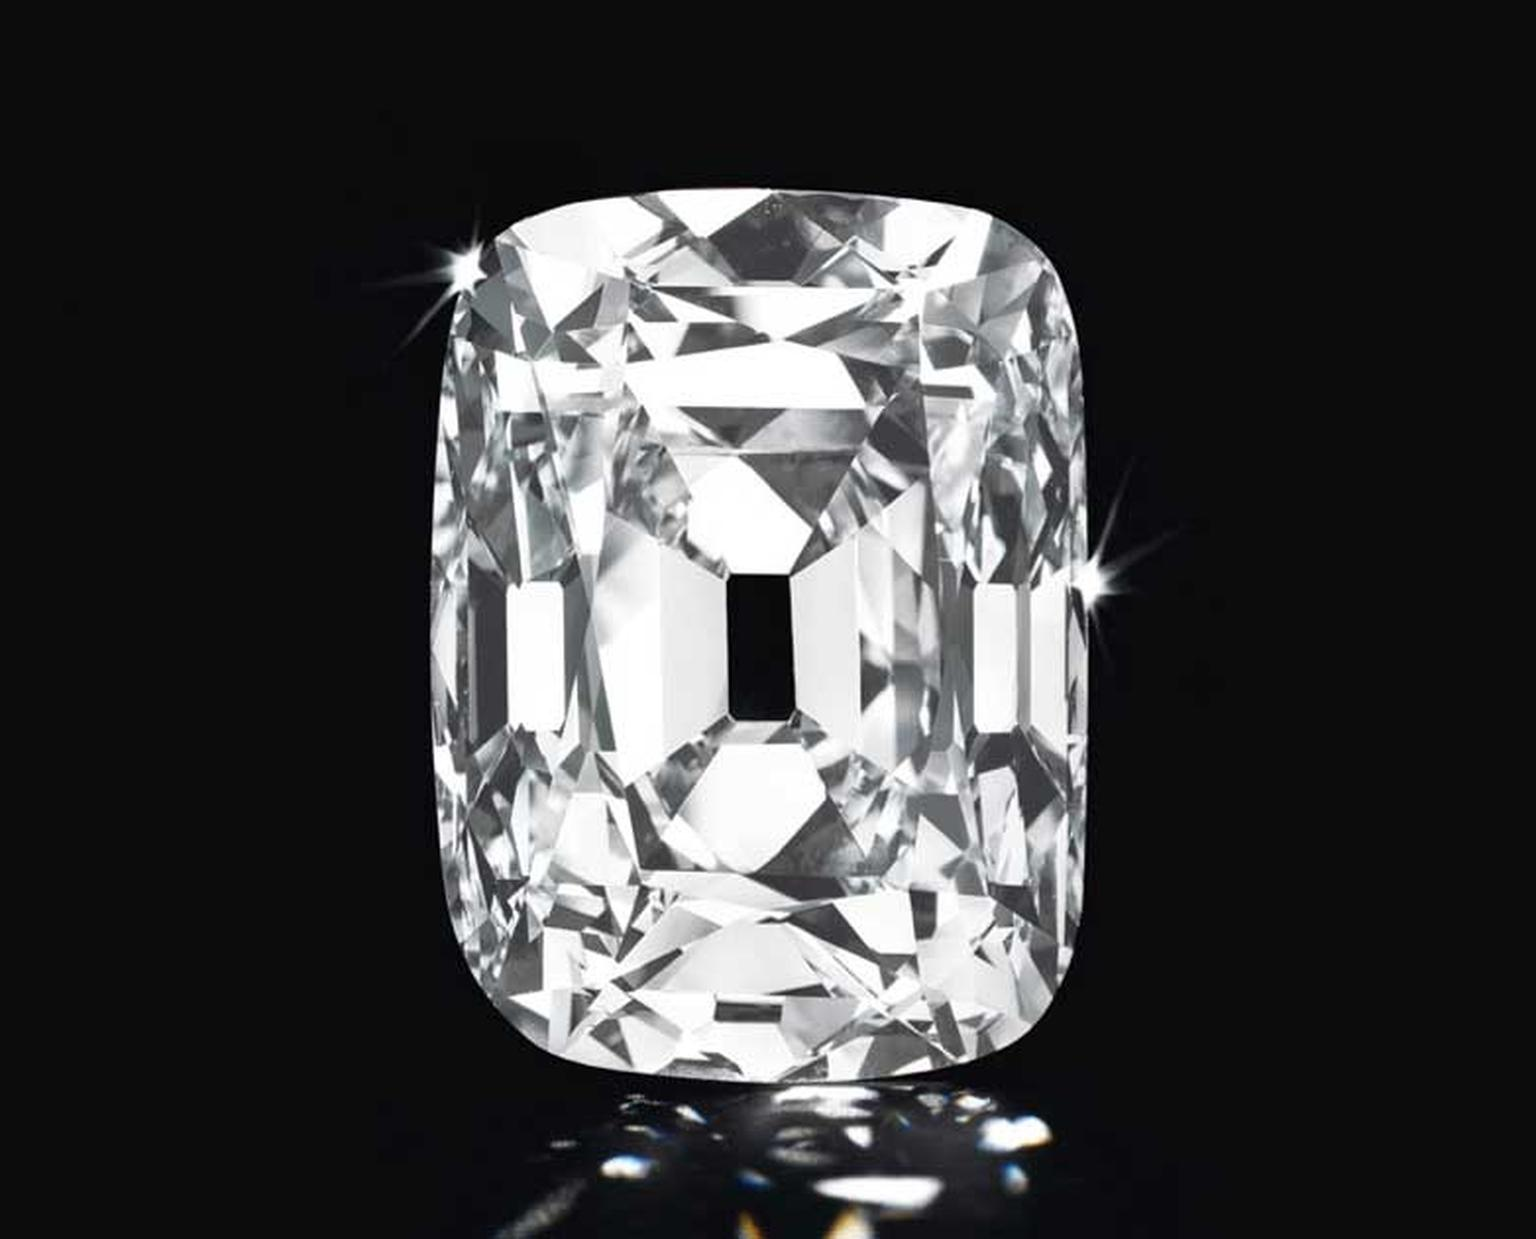 The legendary Archduke Joseph Diamond, a 76.02ct D, IF Golconda diamond, sold for an impressive $21.5 million at Christie's Geneva in 2012. It holds the world record for the highest price paid per carat for a colourless diamond at auction.